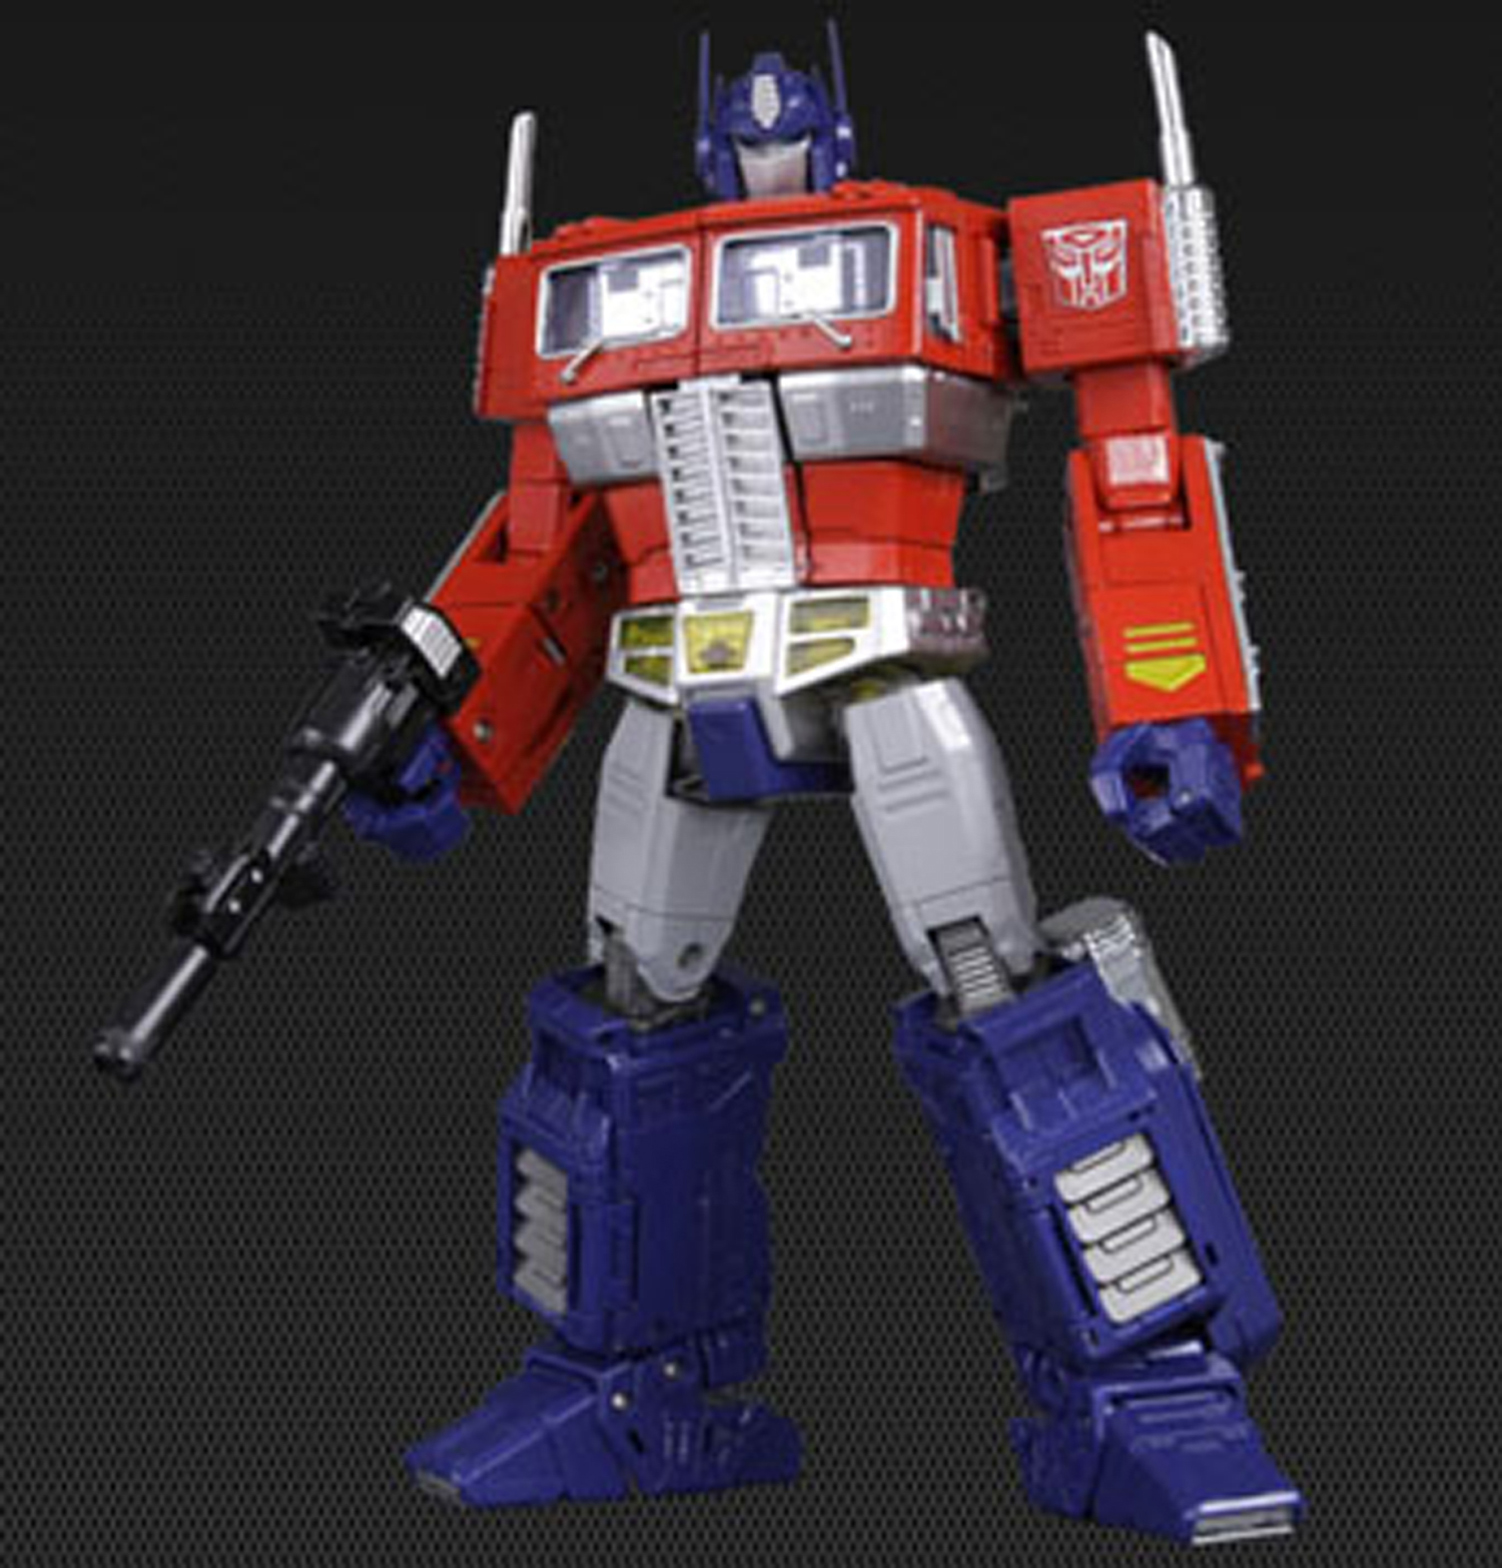 Transformers Masterpiece Figure: MP-10 Optimus Prime with Trailer, Relaunch by Takara